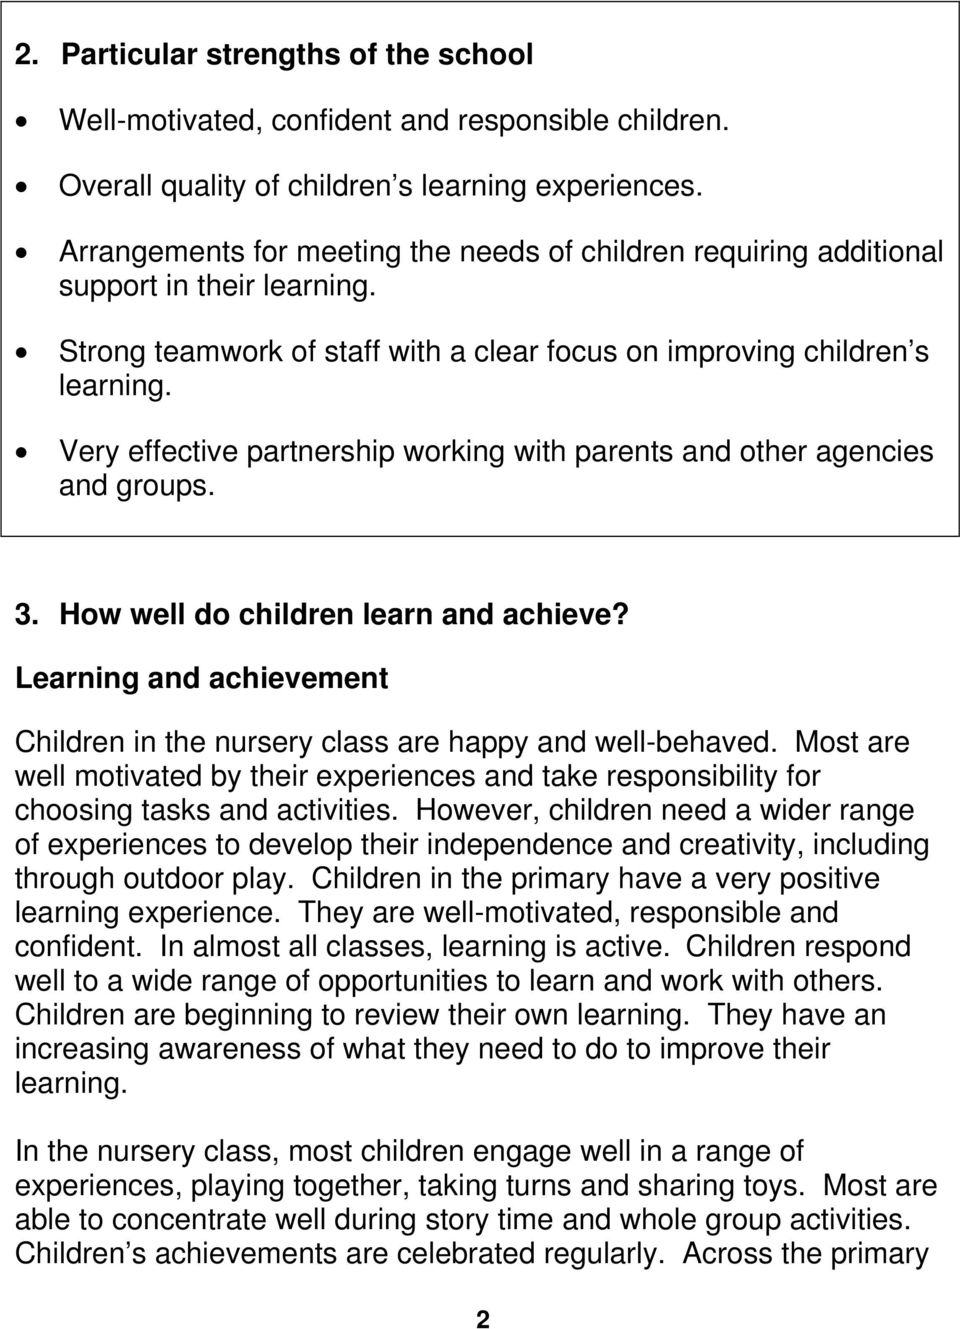 Very effective partnership working with parents and other agencies and groups. 3. How well do children learn and achieve?